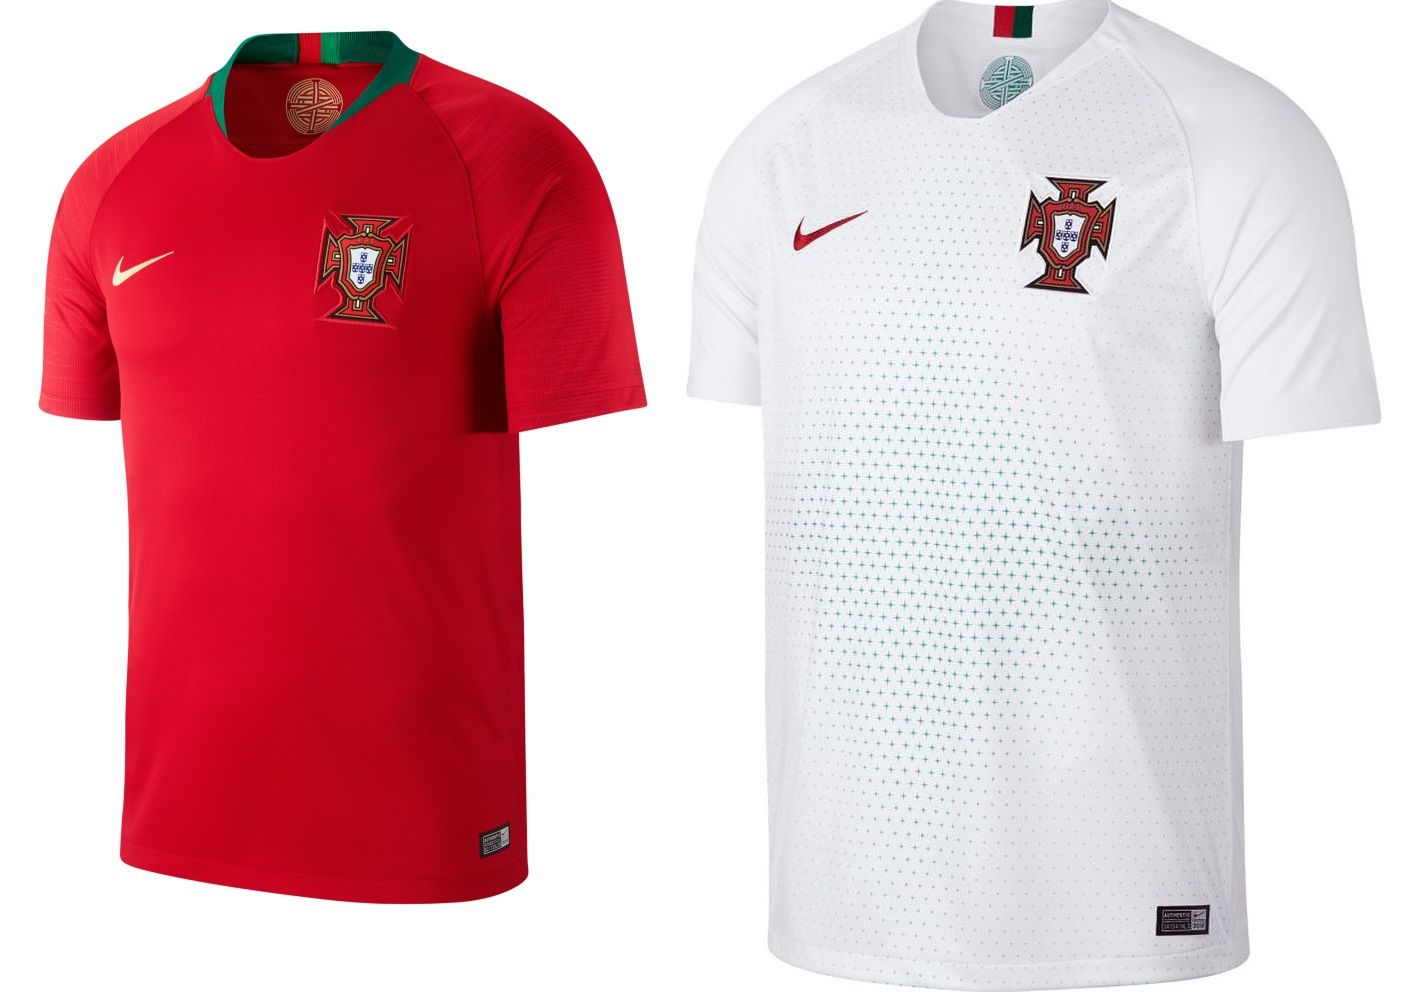 7e8ebef1d World Cup 2018 Kits Portugal (Home   Away Jerseys) – Nike  disnaija   worldcup2018  fifaworldcup  football  roadtorussia  worldcup2018russia   russia2018   ...